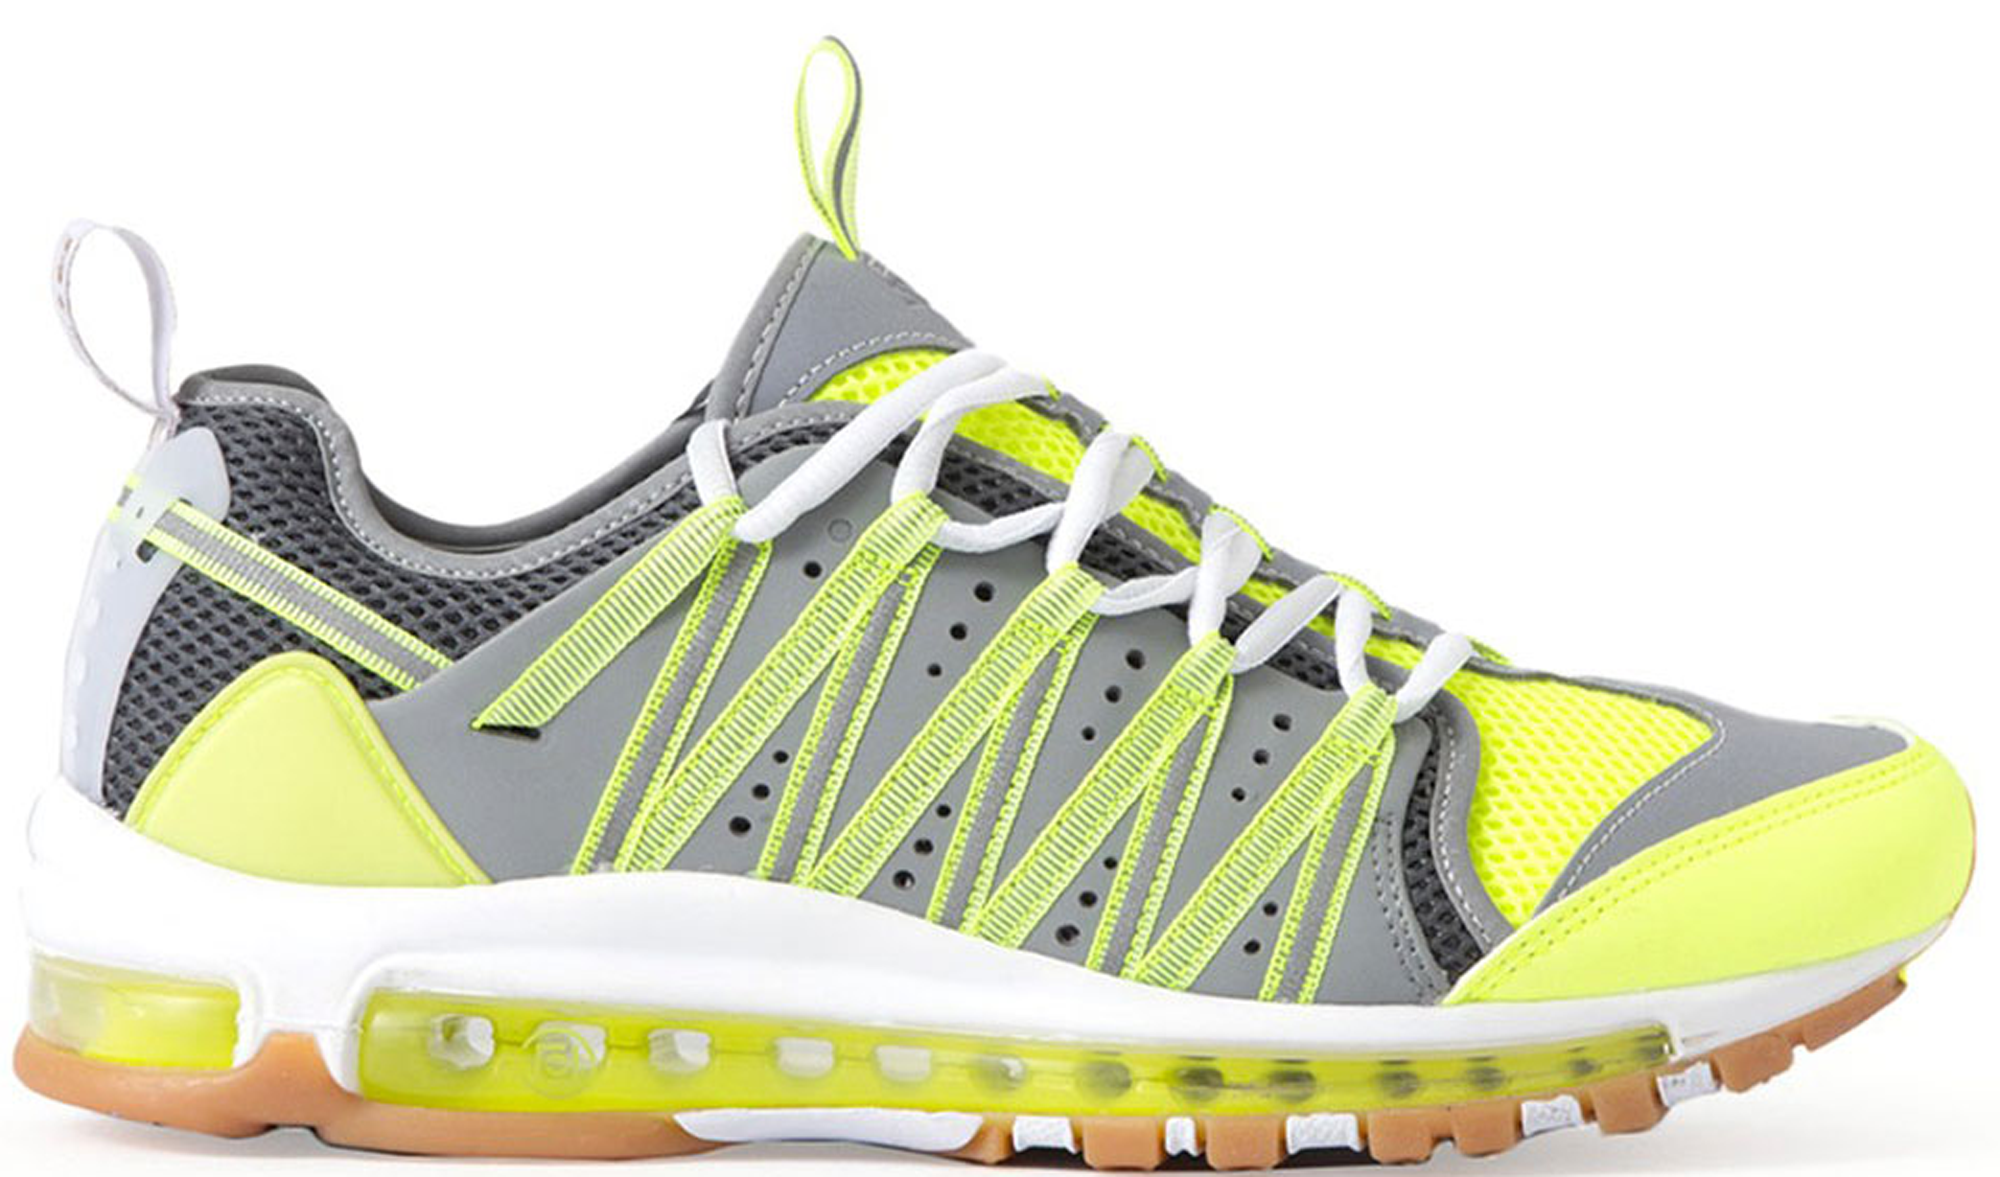 Nike Zoom Haven 97 Clot Volt • Buy/Sell